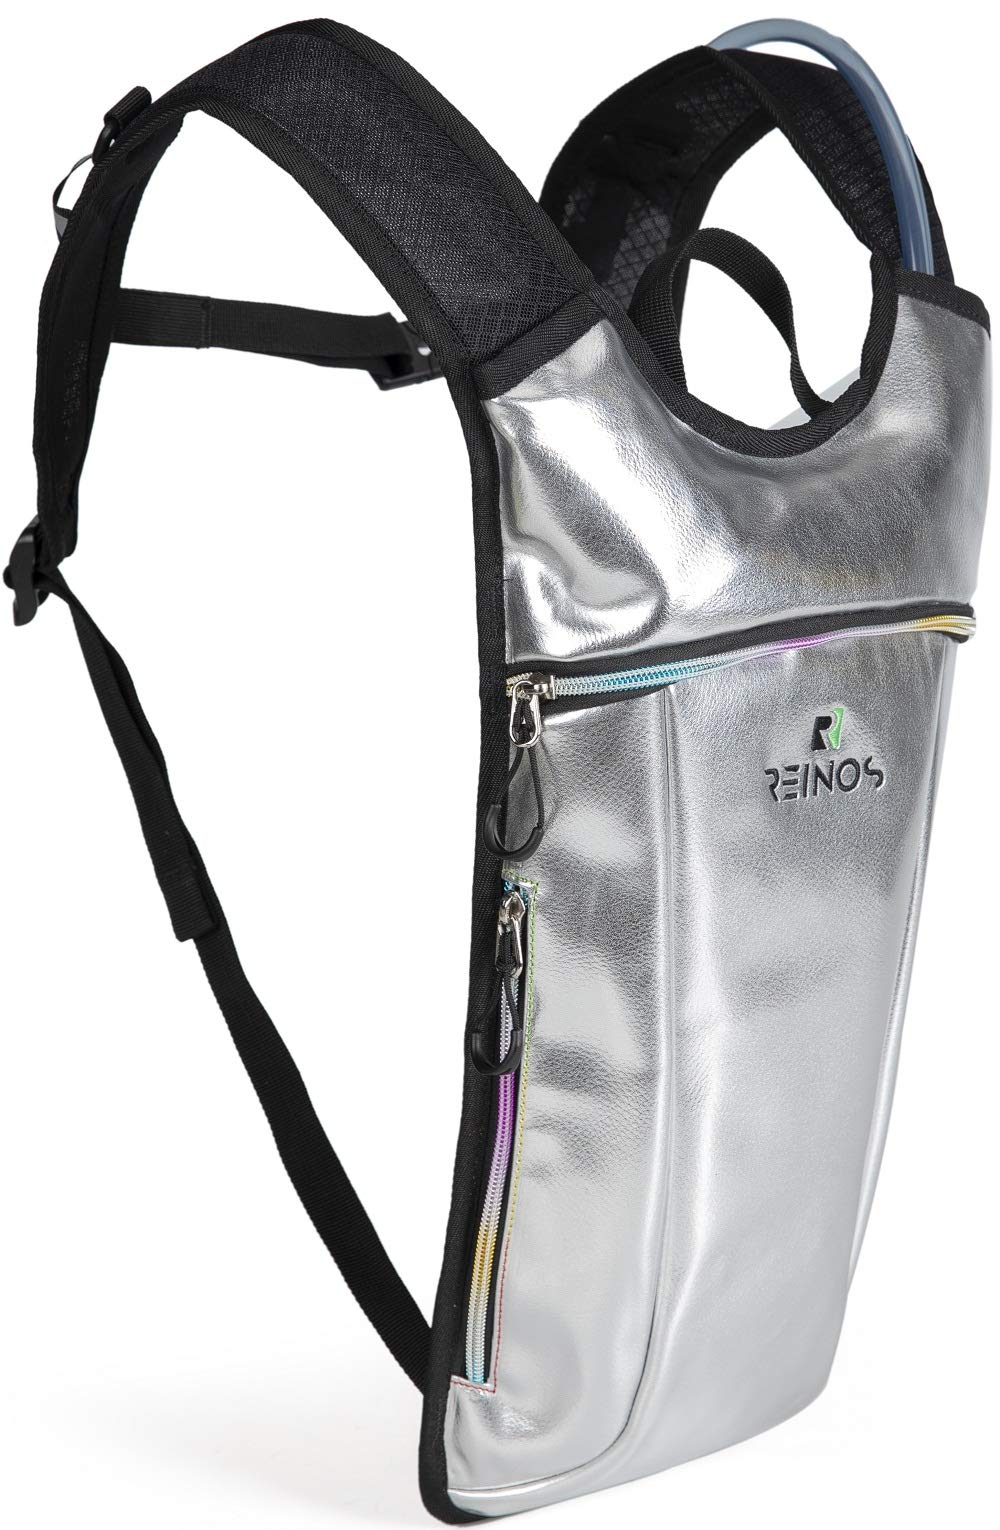 REINOS Hydration Backpack - Light Water Pack - 2L Water Bladder Included for Running, Hiking, Biking, Festivals, Raves (Platinum) by REINOS